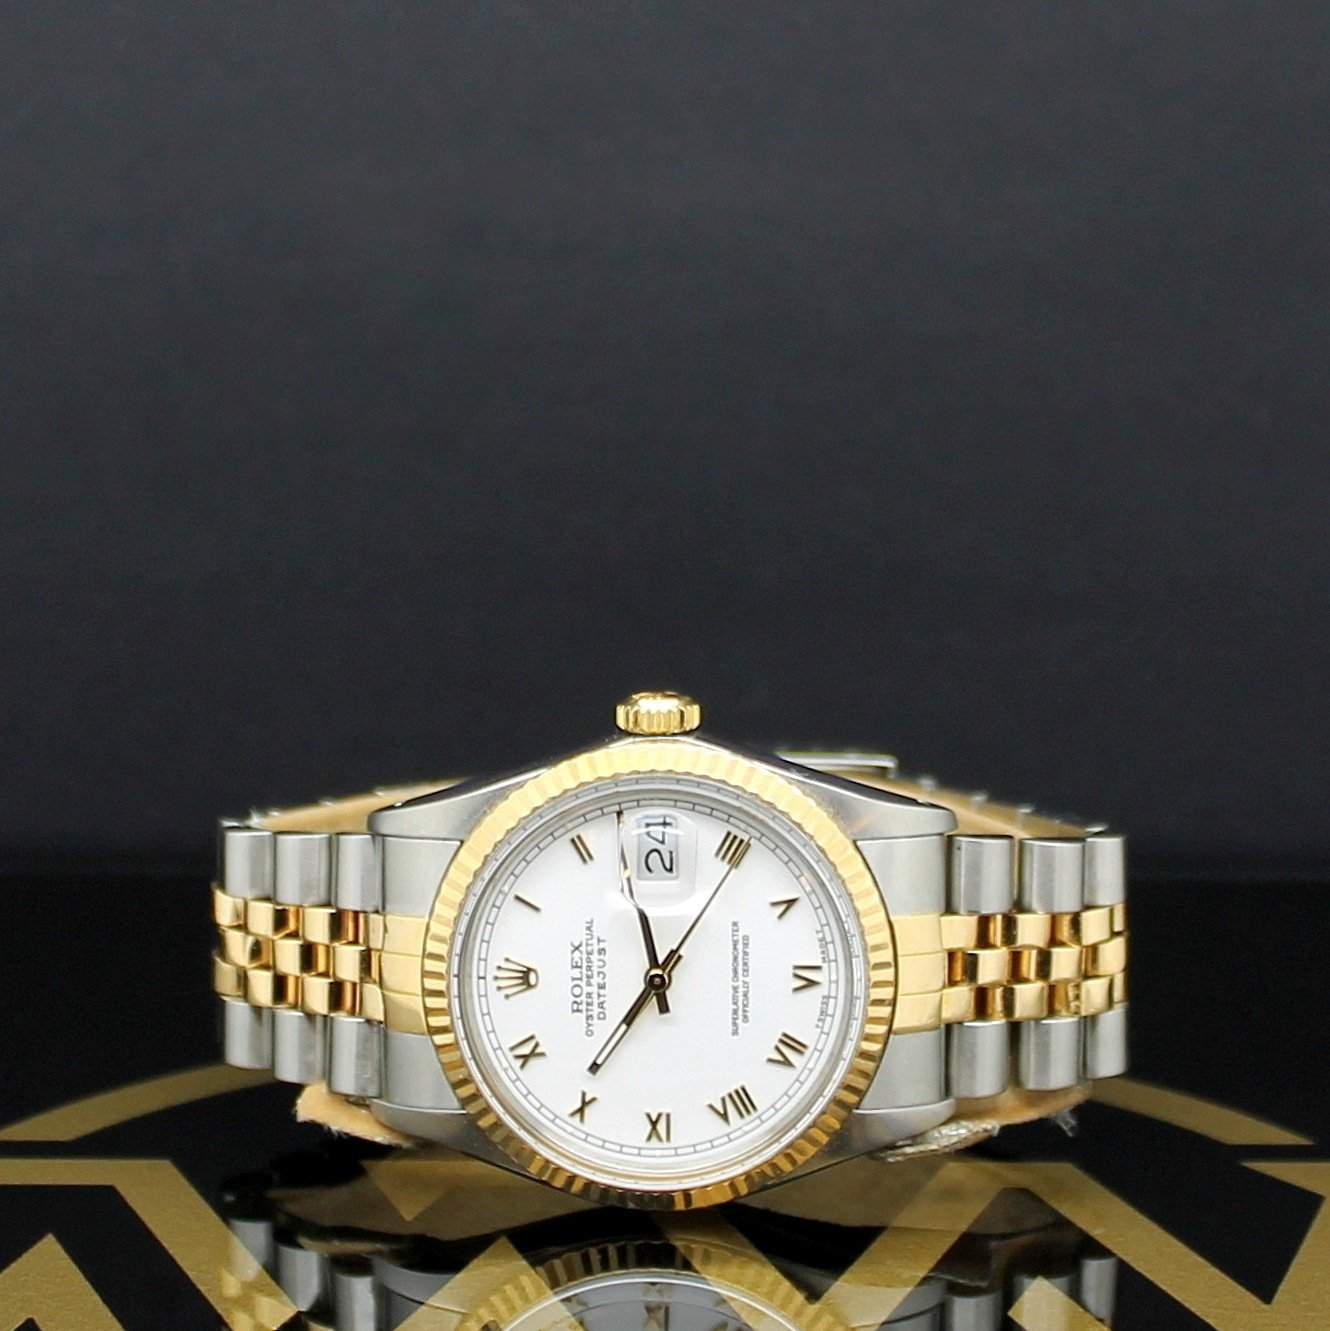 The two-tone version of the Datejust is probably the original version that Rolex had in mind.